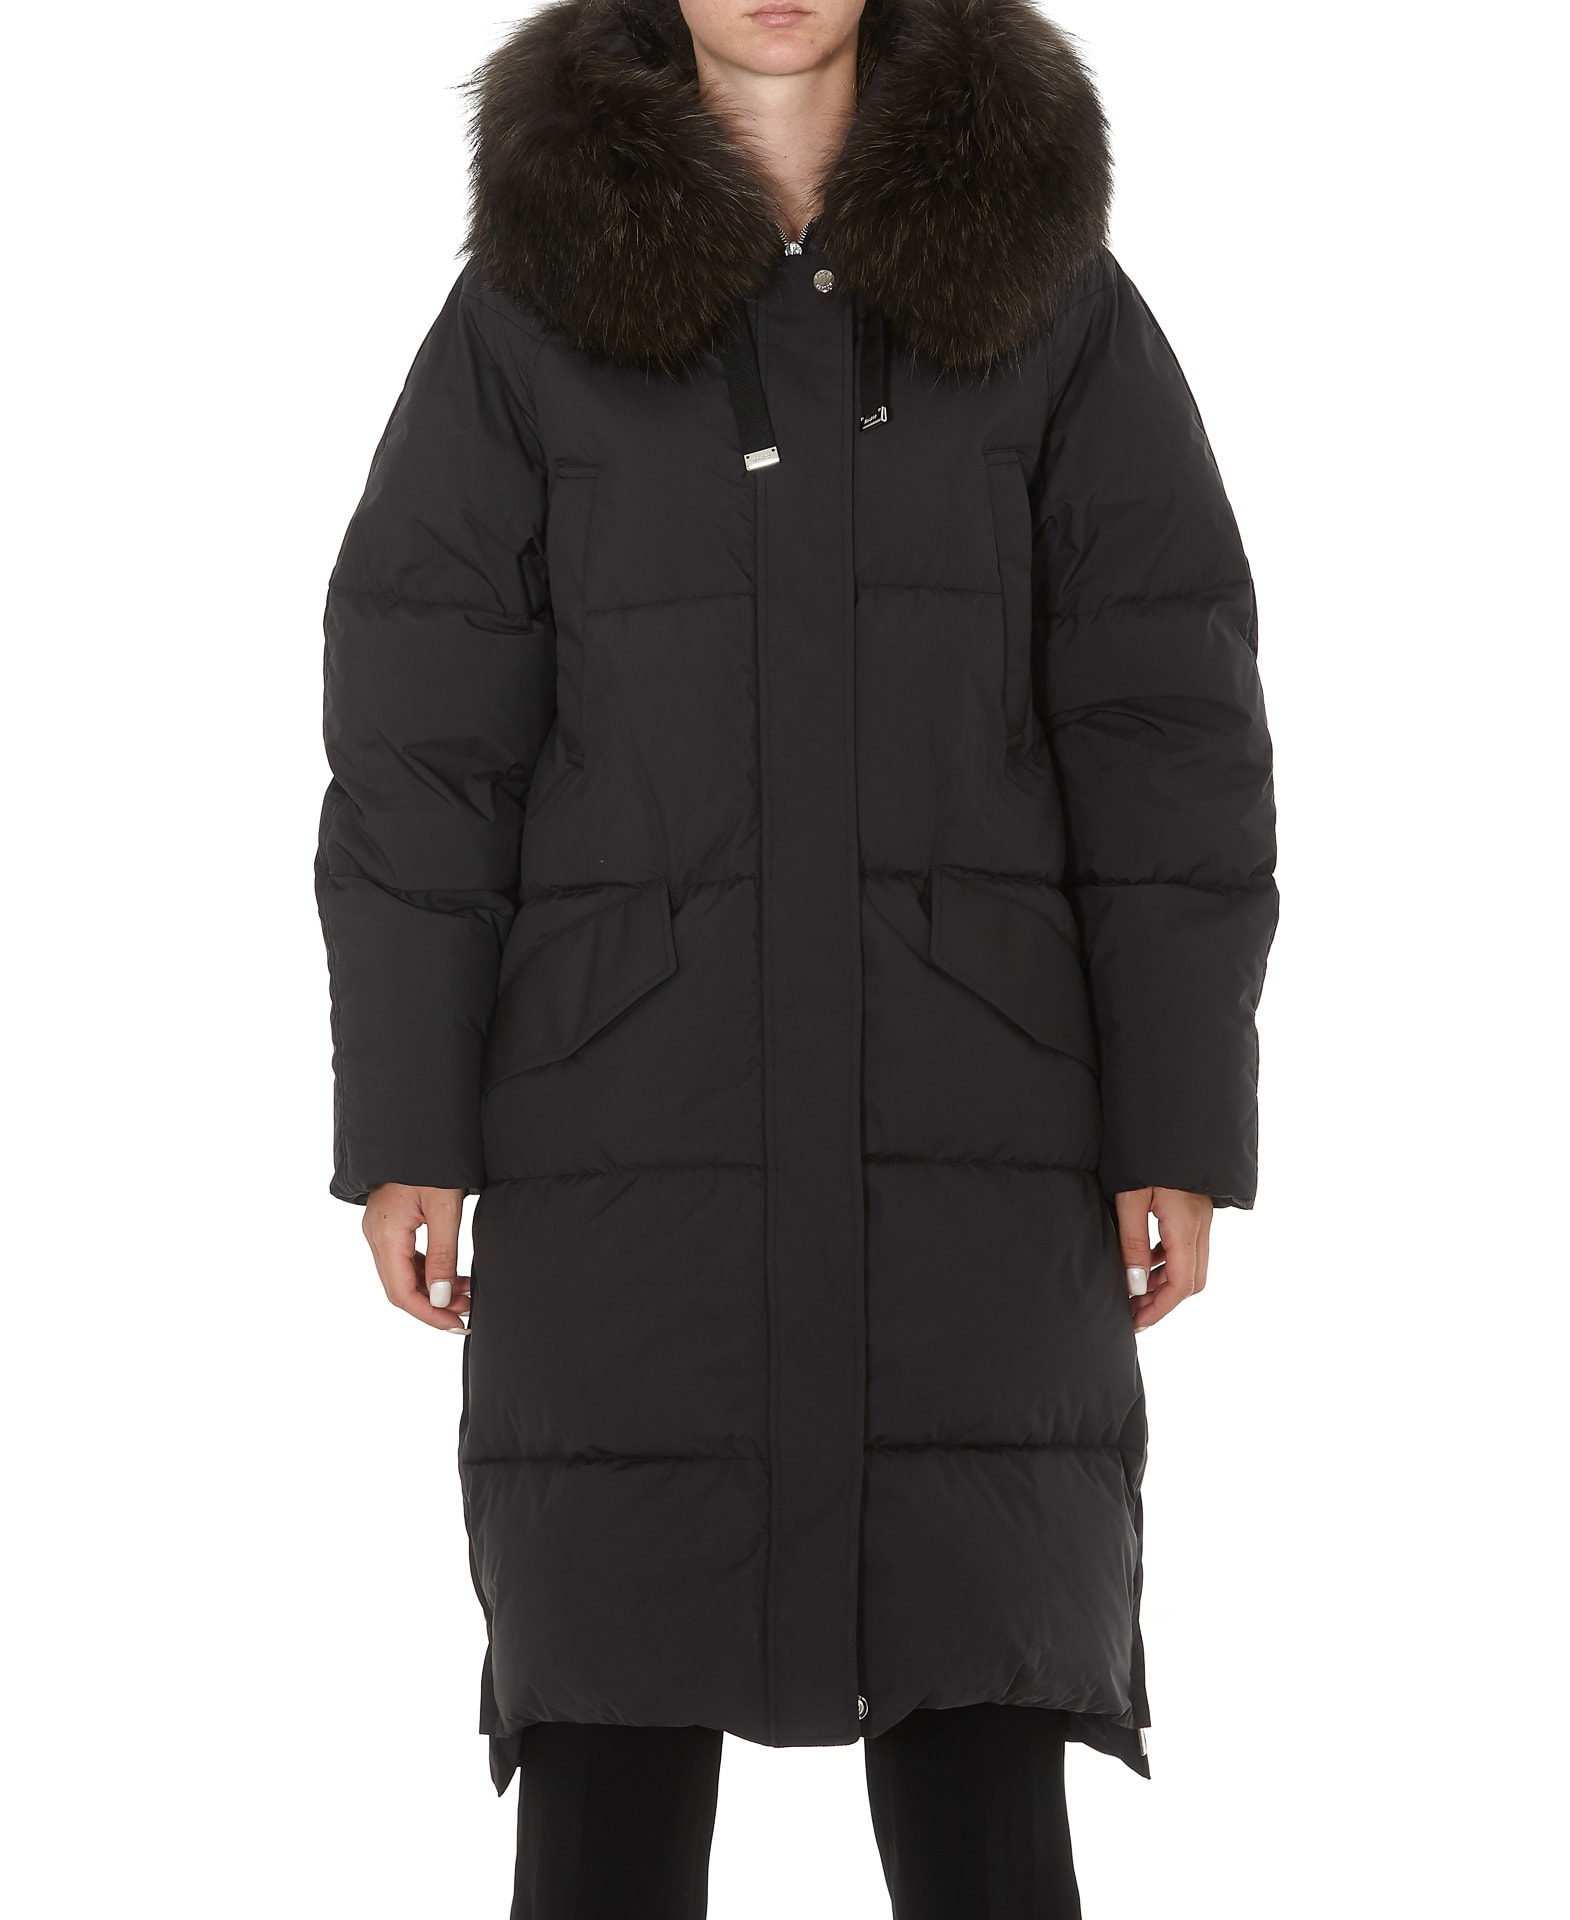 Moorer Enia Down Jacket